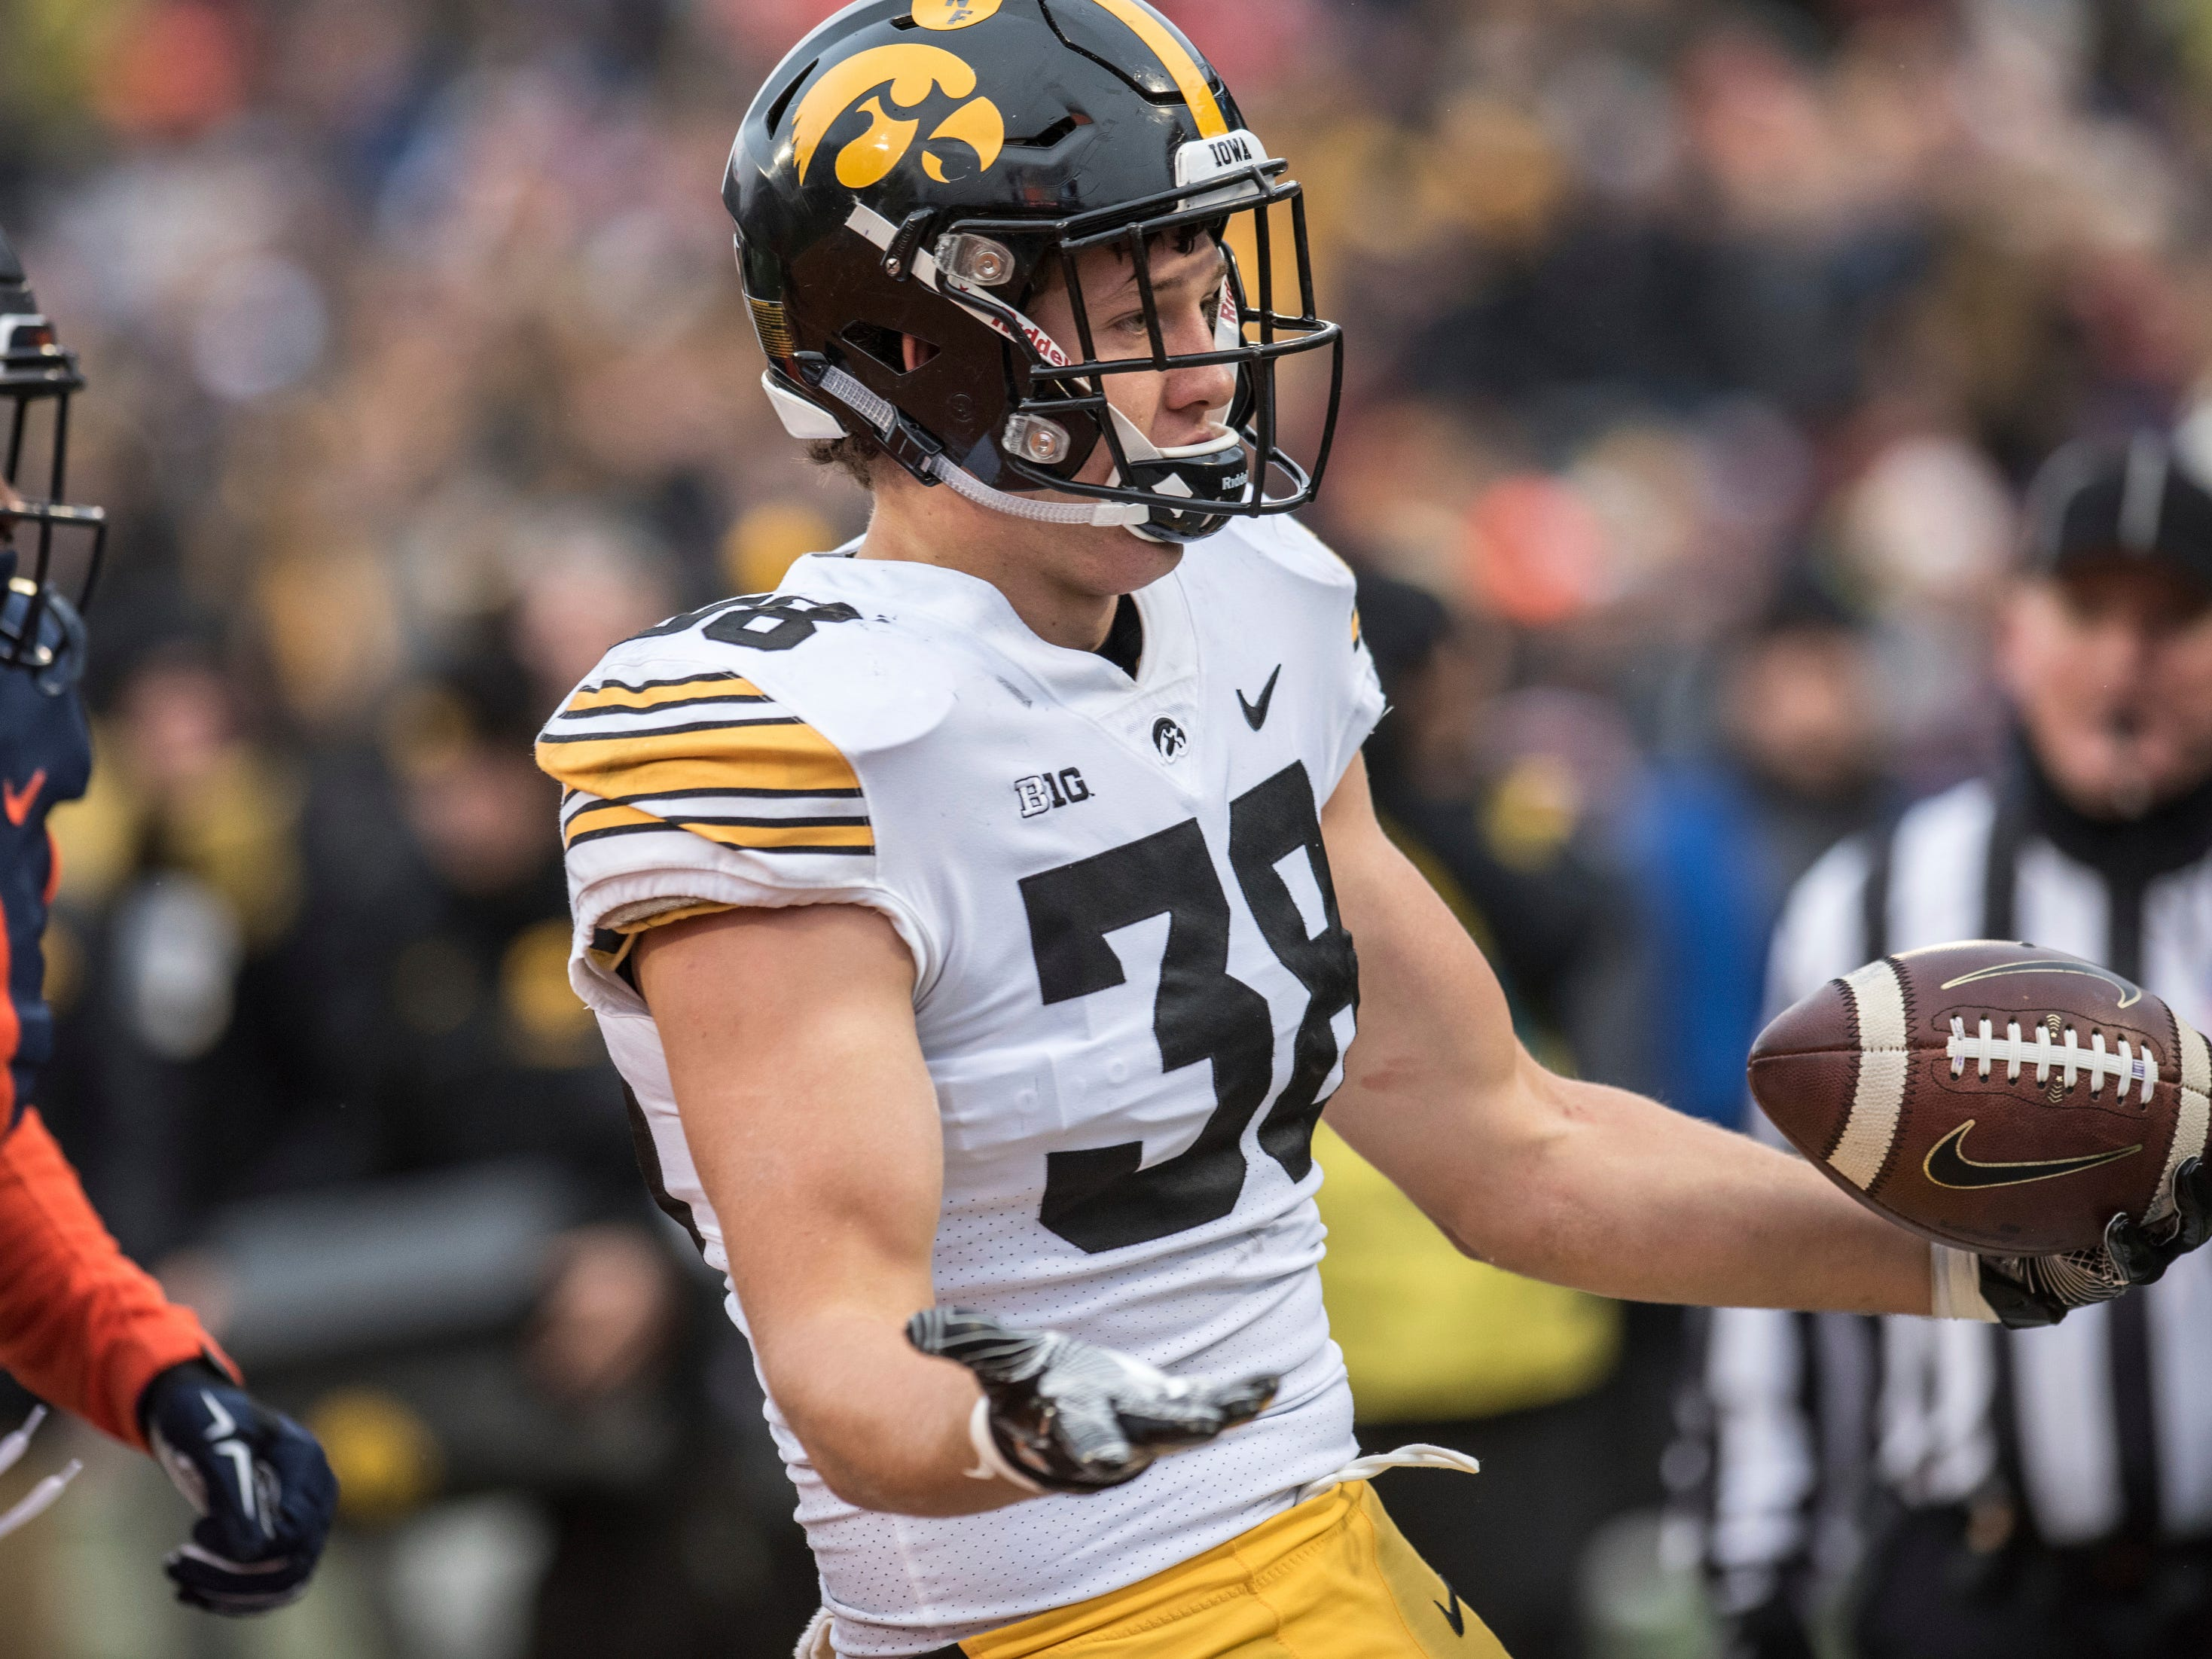 Mel Kiper Jr's latest NFL mock Draft has lots of love for Iowa Hawkeyes' product T.J. Hockenson